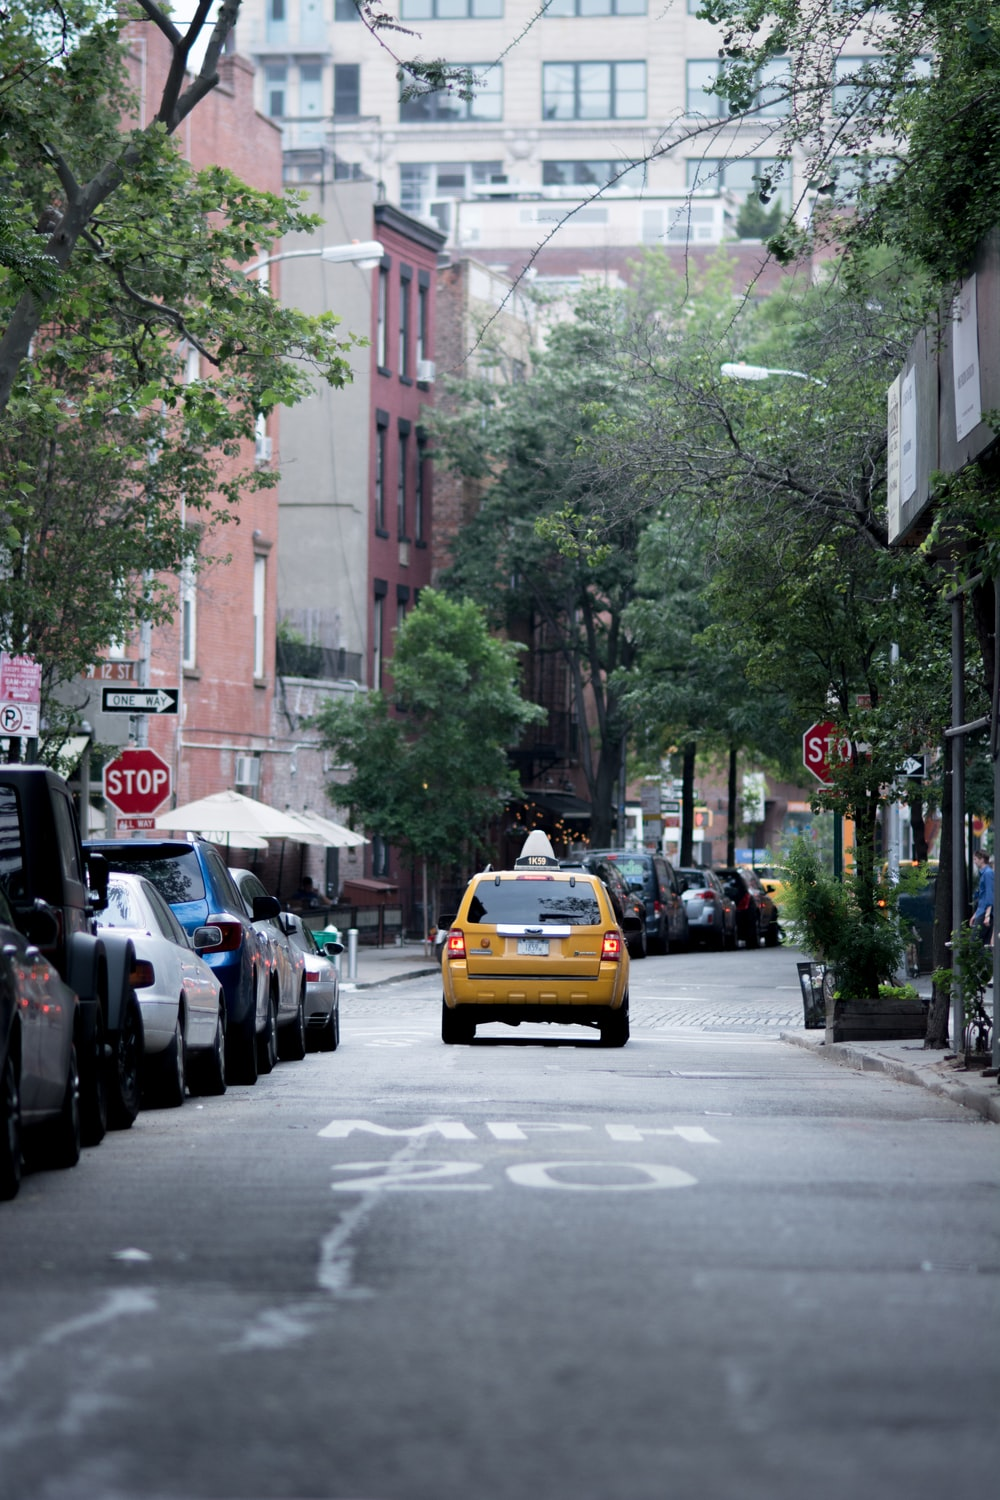 yellow taxi cab on gray concrete road top near buildings and trees during daytime